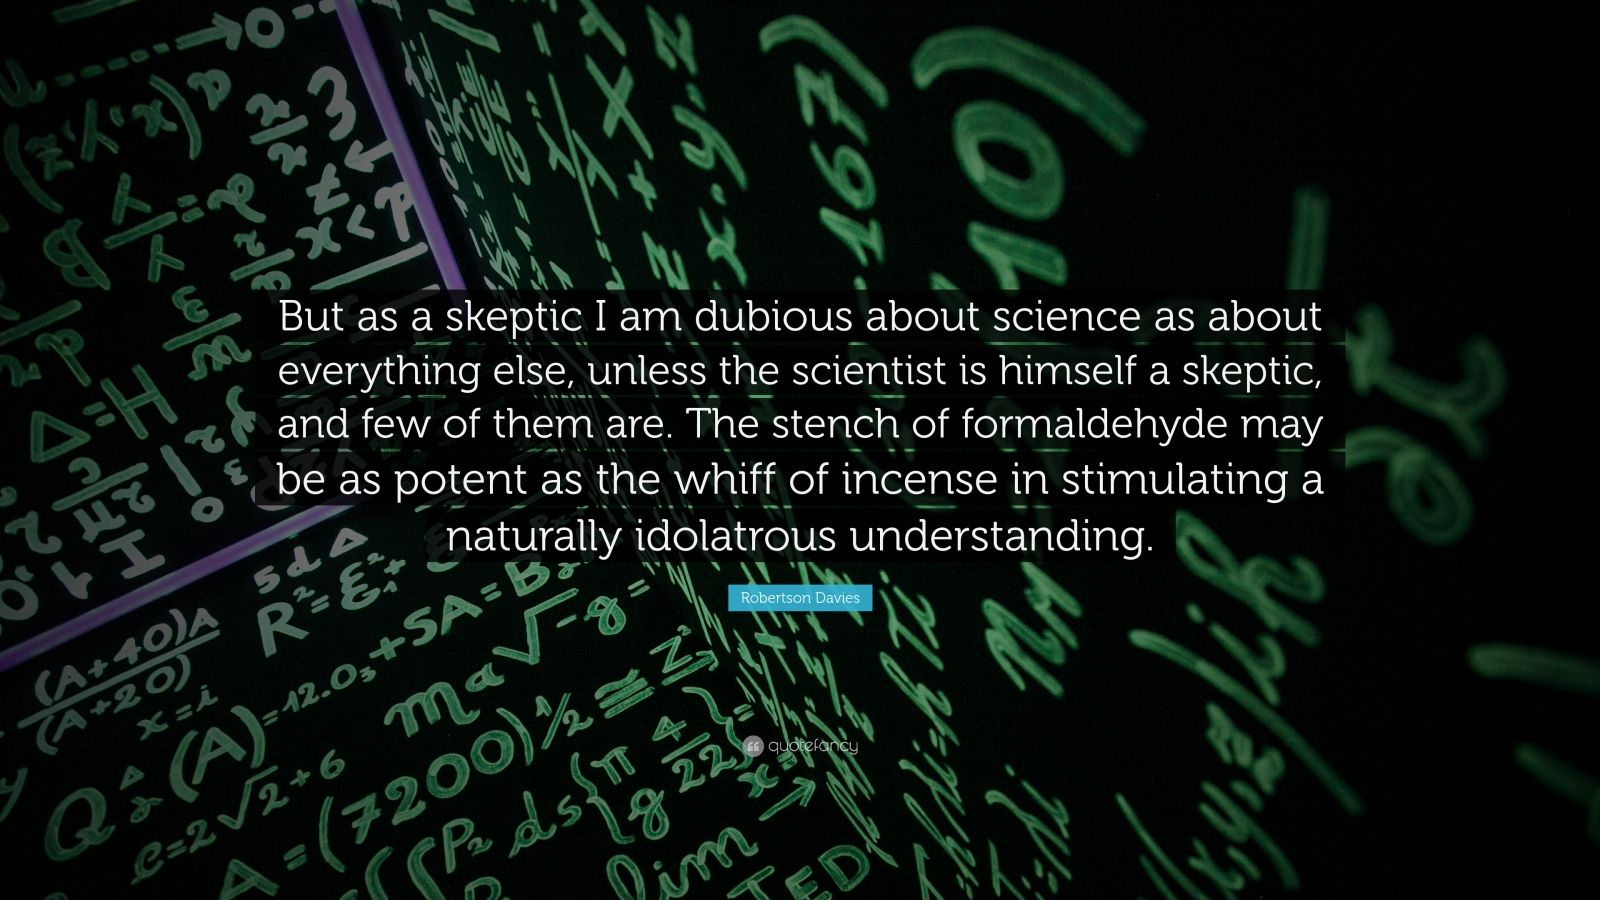 """Robertson Davies Quote: """"But as a skeptic I am dubious about science as about everything else, unless the scientist is himself a skeptic, and few of them are. The stench of formaldehyde may be as potent as the whiff of incense in stimulating a naturally idolatrous understanding."""""""